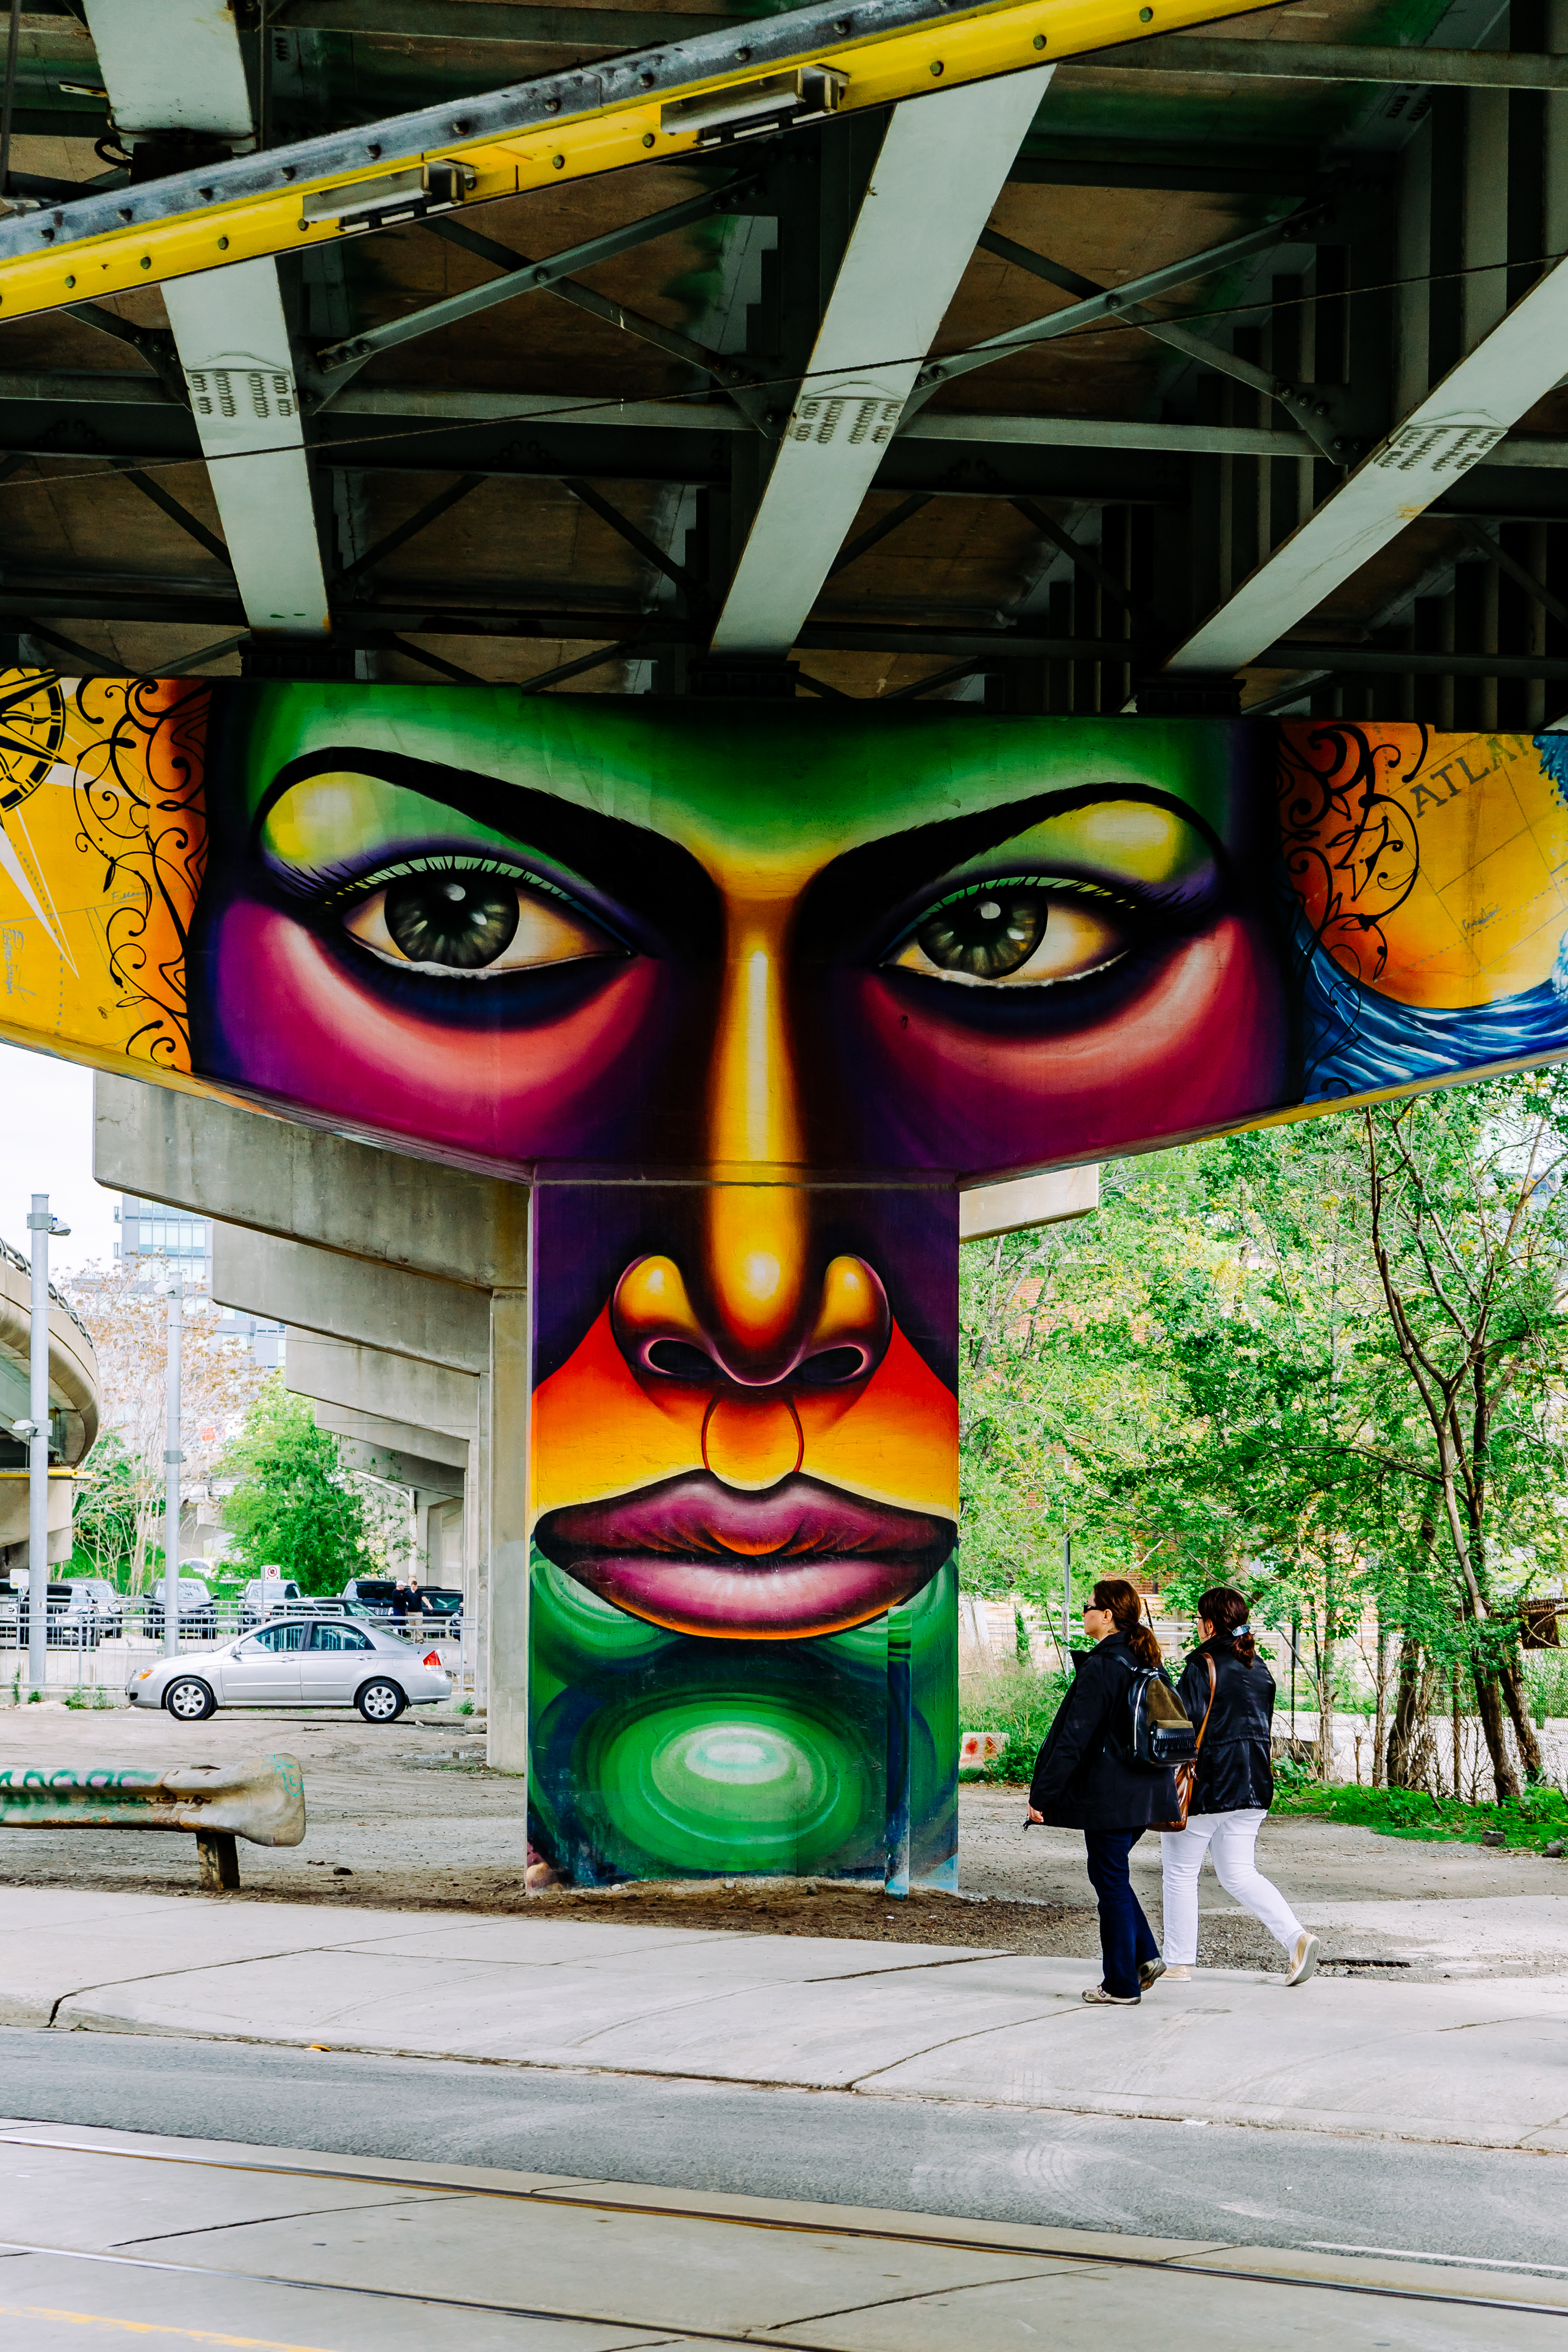 Best Iphone 4 Wallpapers Hd Free Stock Photo Of Street Art